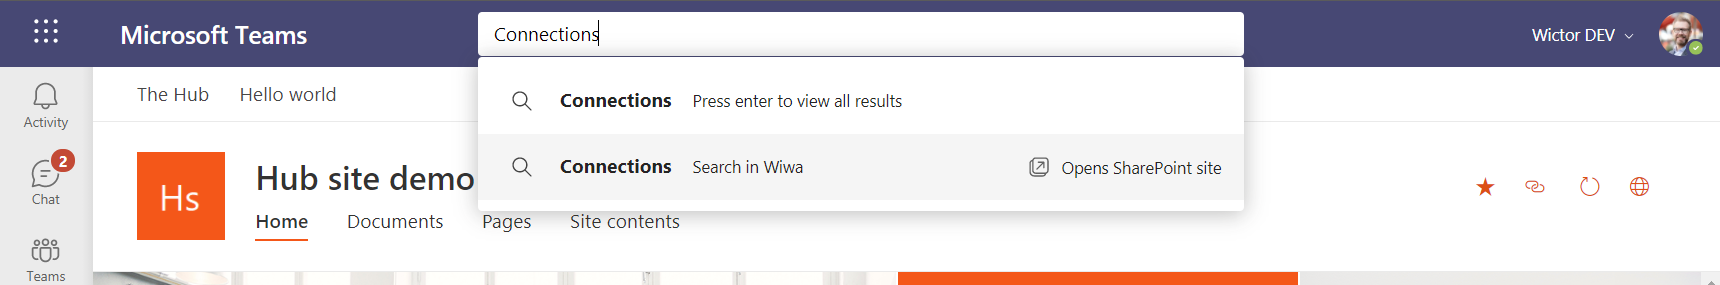 Viva Connections Search